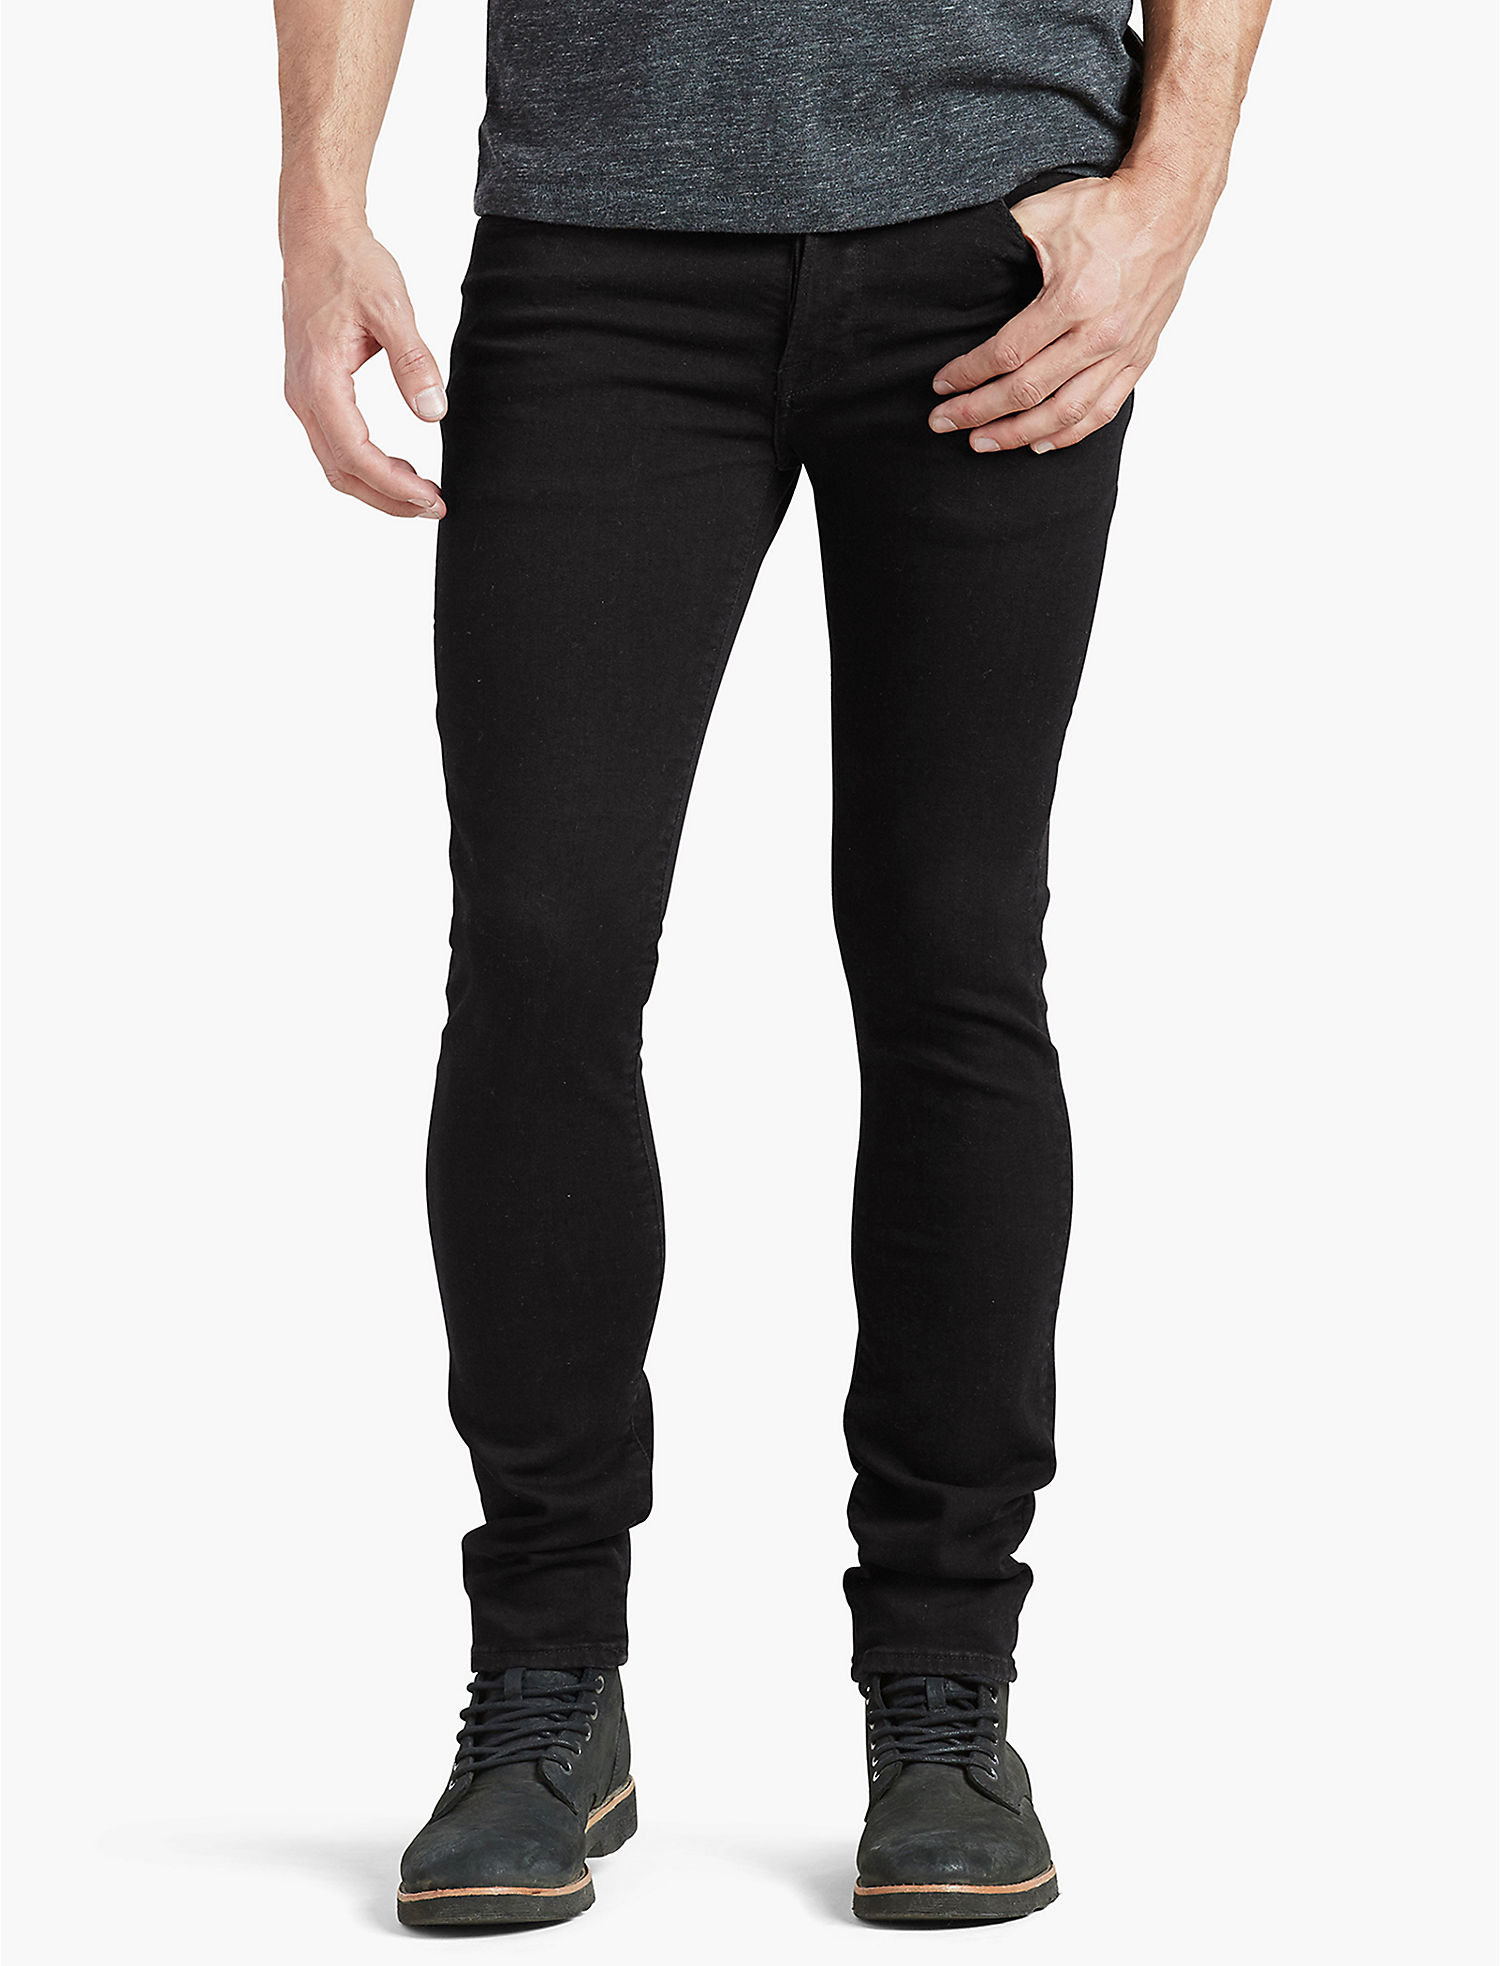 Skinny Jeans For Men On Sale | Extra 50% Off Sale Styles | Lucky Brand